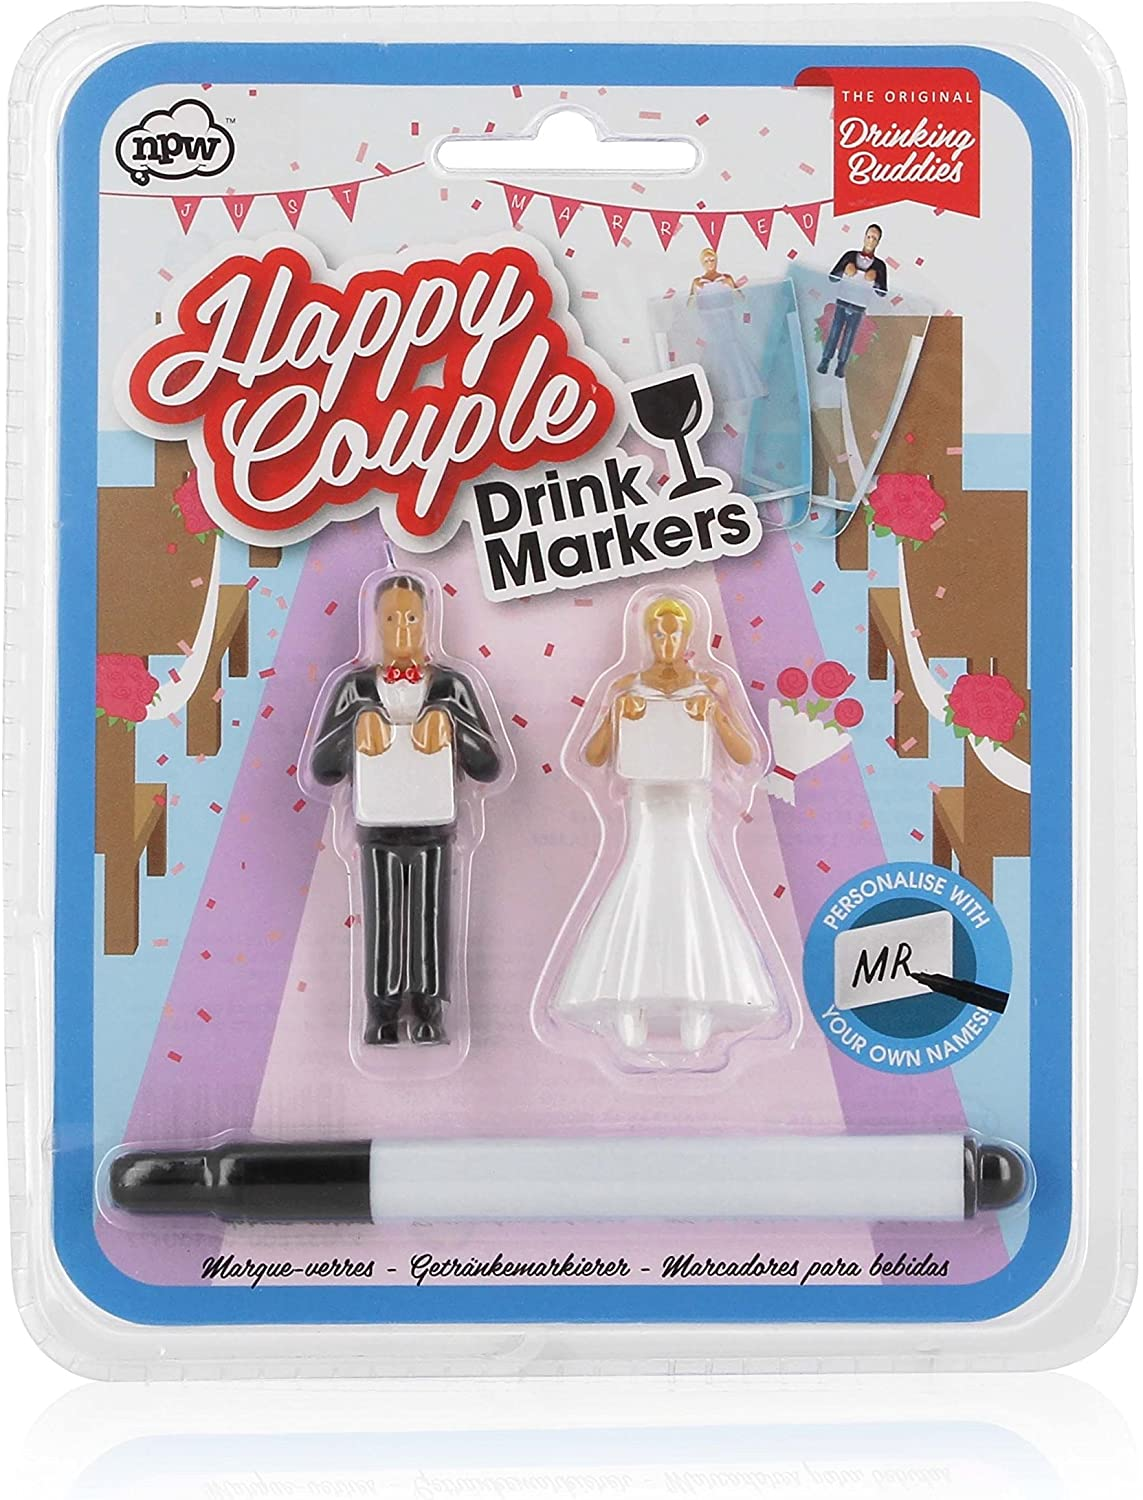 Drinking Buddies Happy Couple Themed Reuseable Glass Drink Markers, Bride & Groom